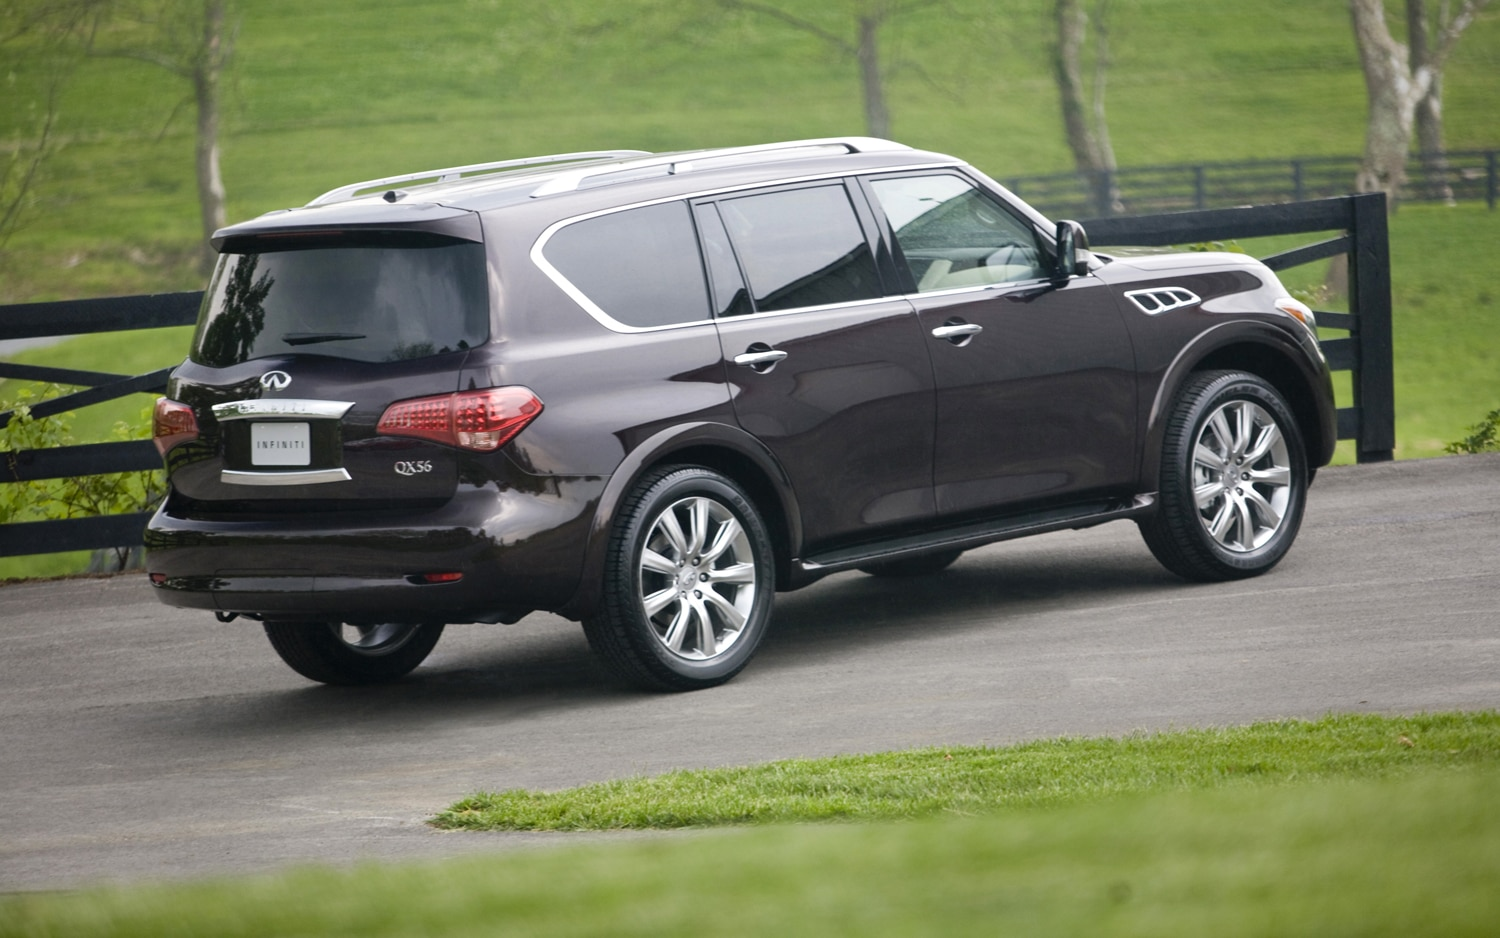 2012 Infiniti QX56 4WD Rear Right Side View